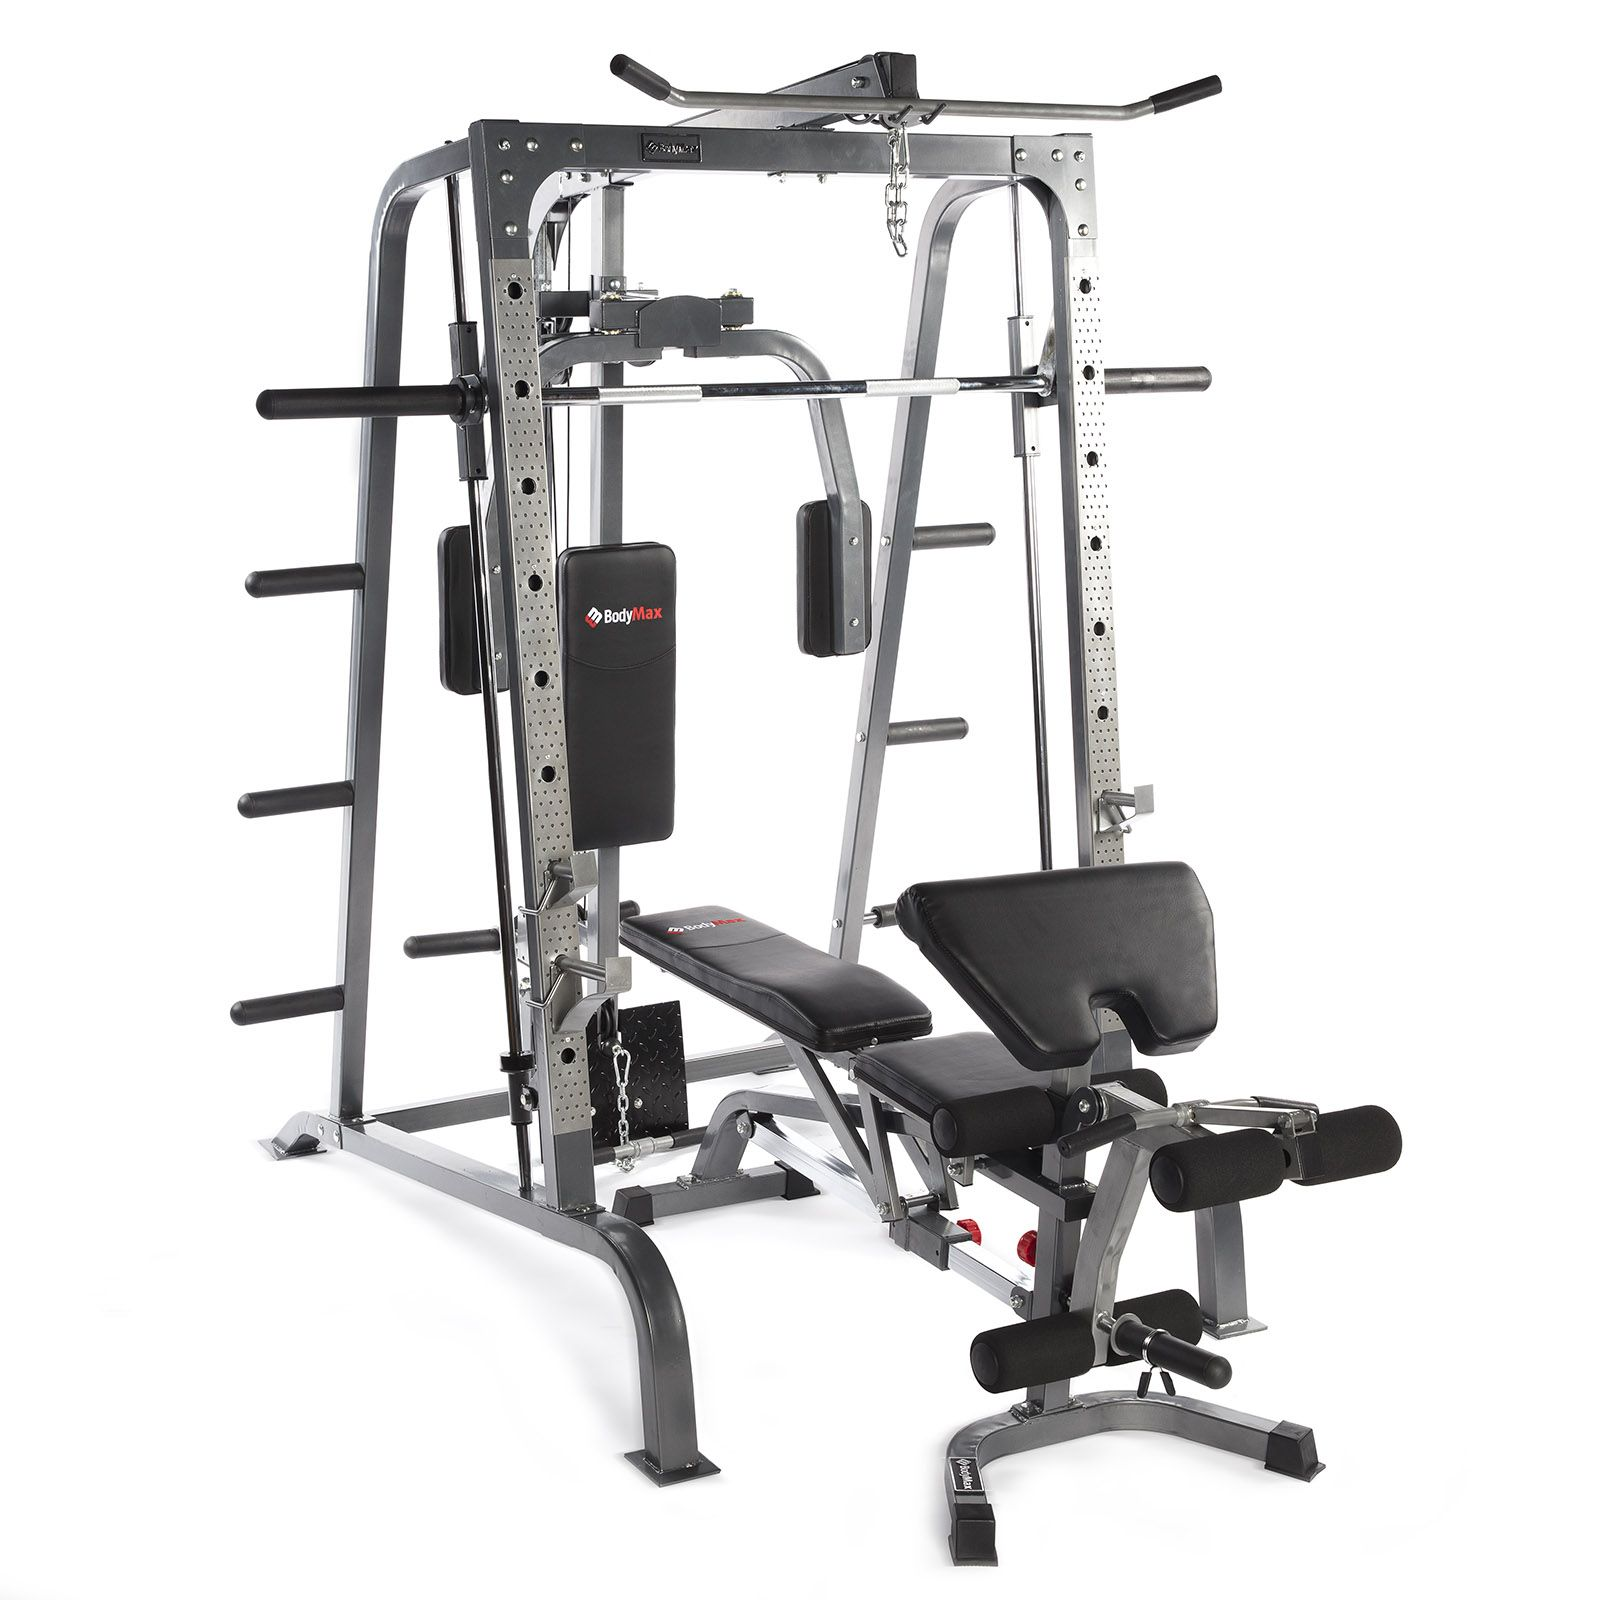 Folding Workout Bench | Powerhouse Weight Bench | Powerhouse Strength Series Weight Bench